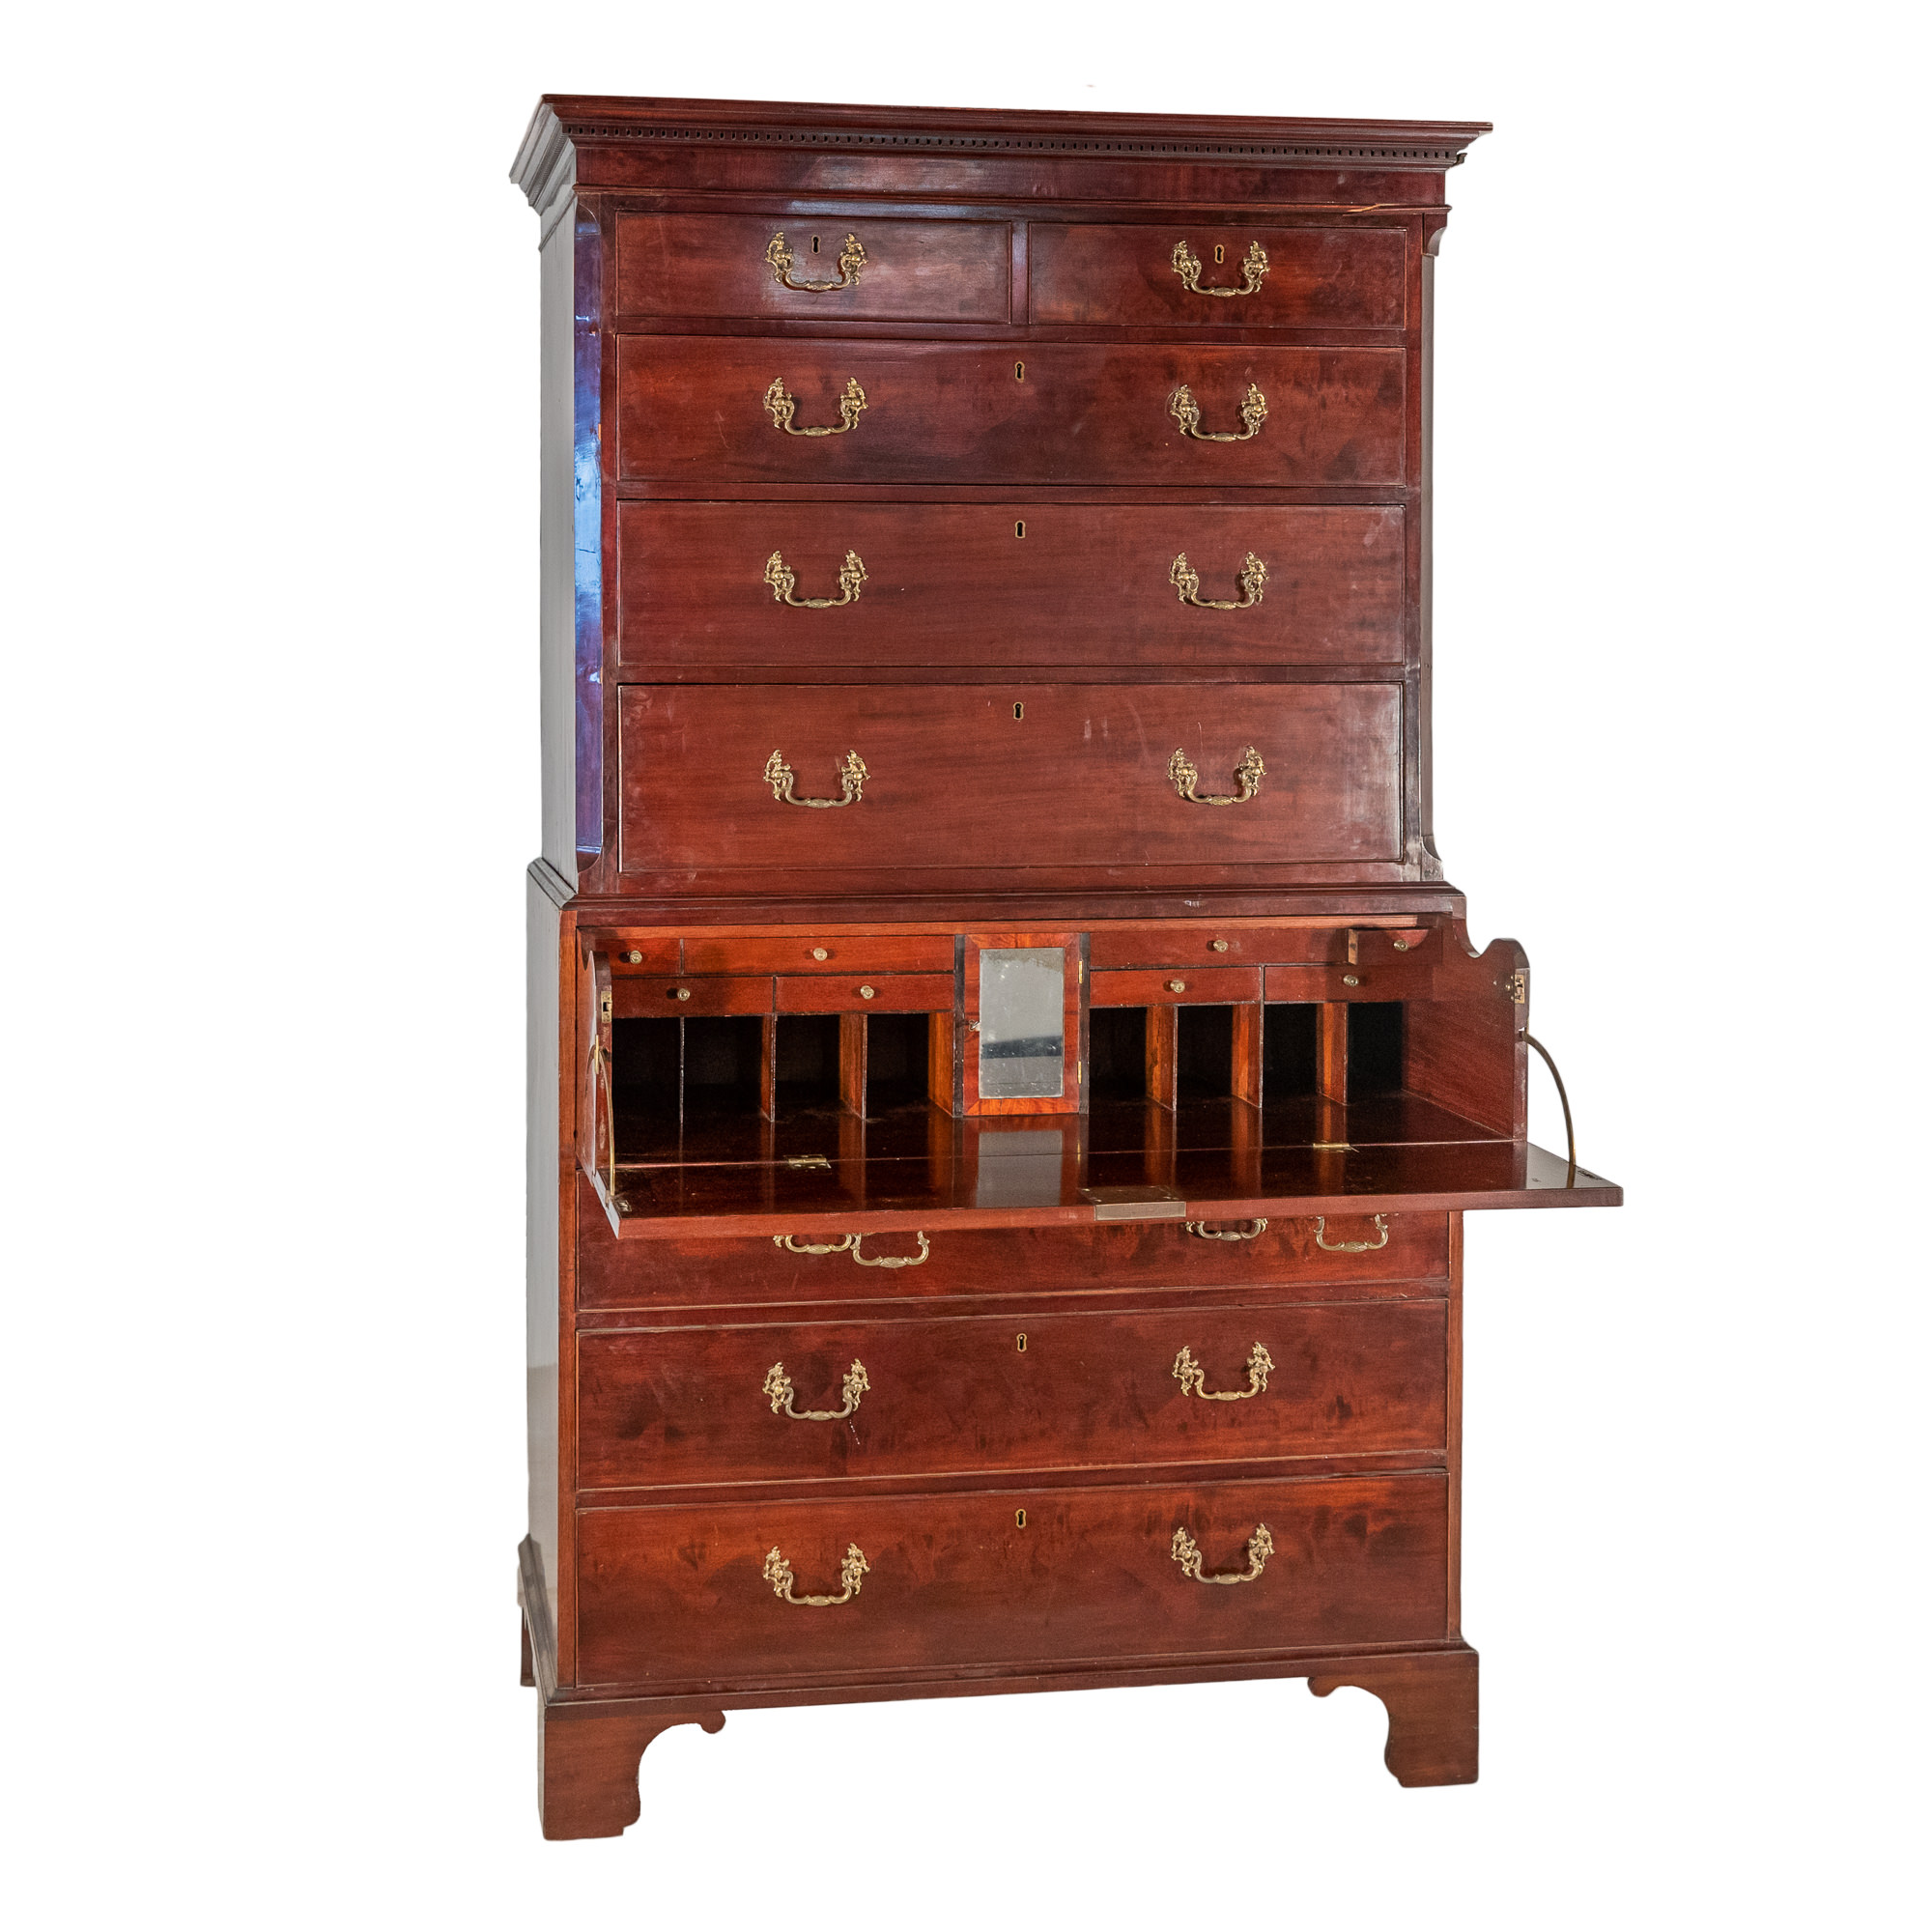 'Georgian Mahogany Chest on Chest with Secretaire Compartment Early 19th Century'